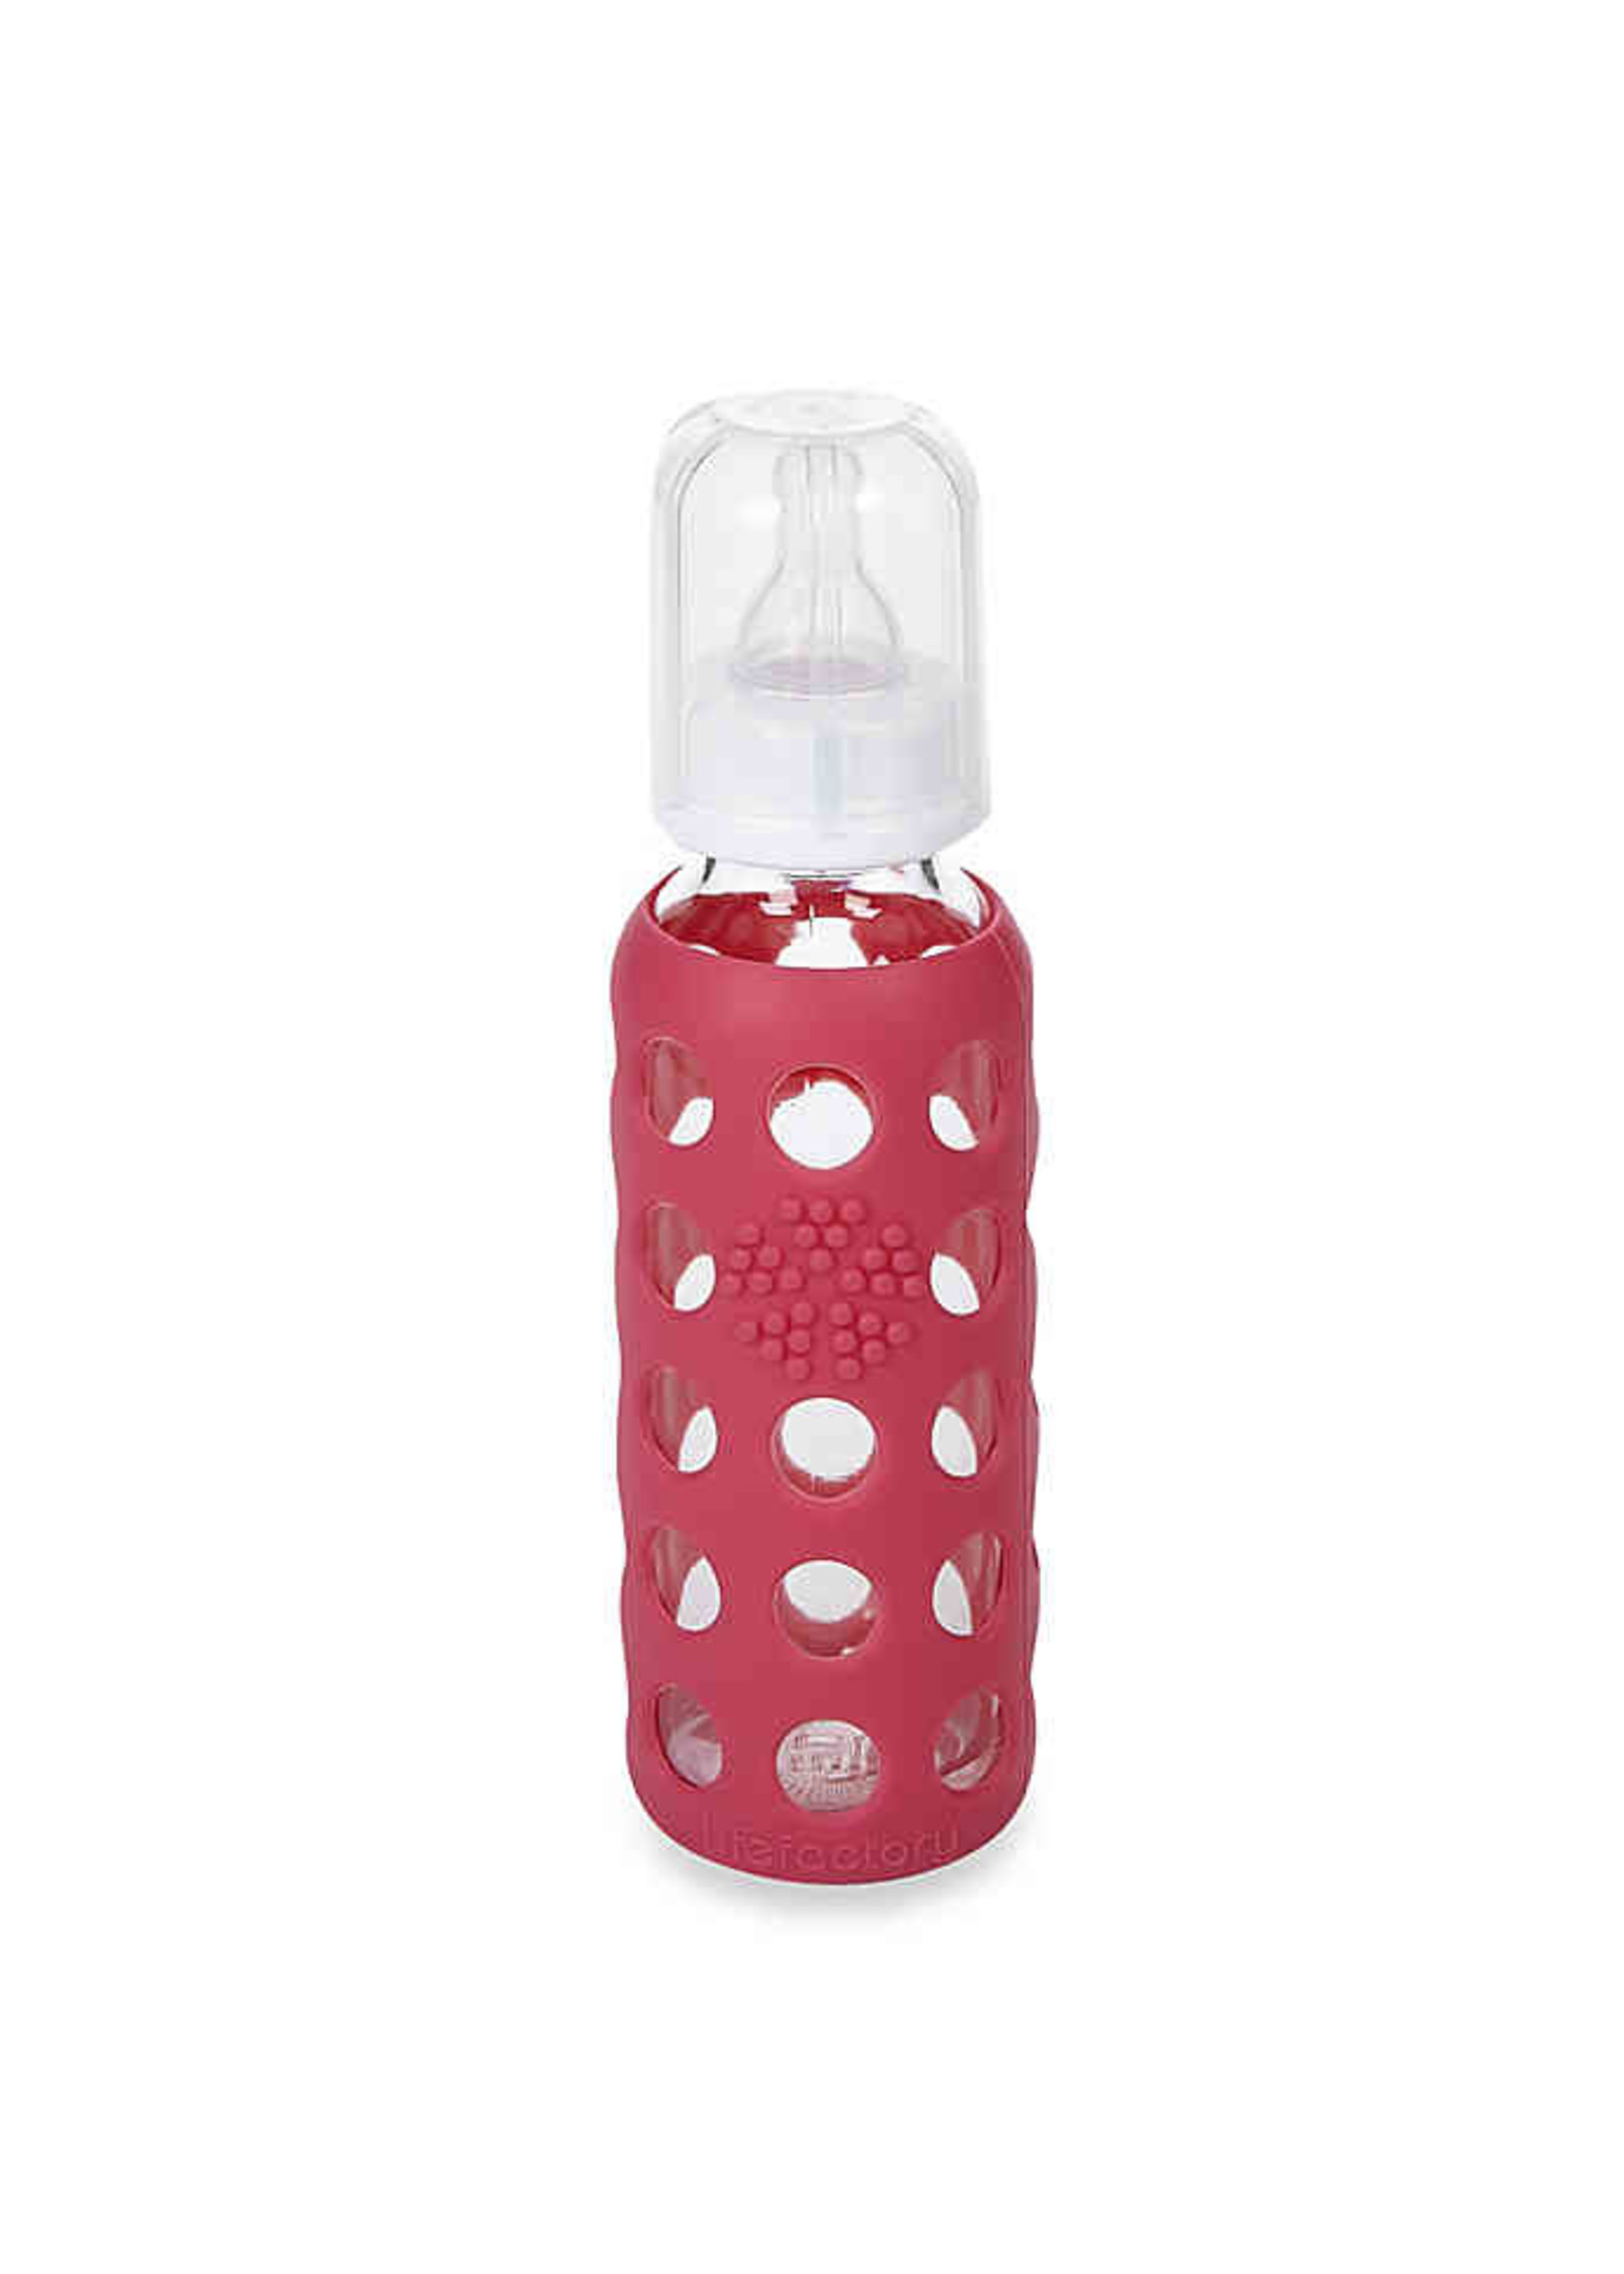 Life Factory LF glass baby bottle